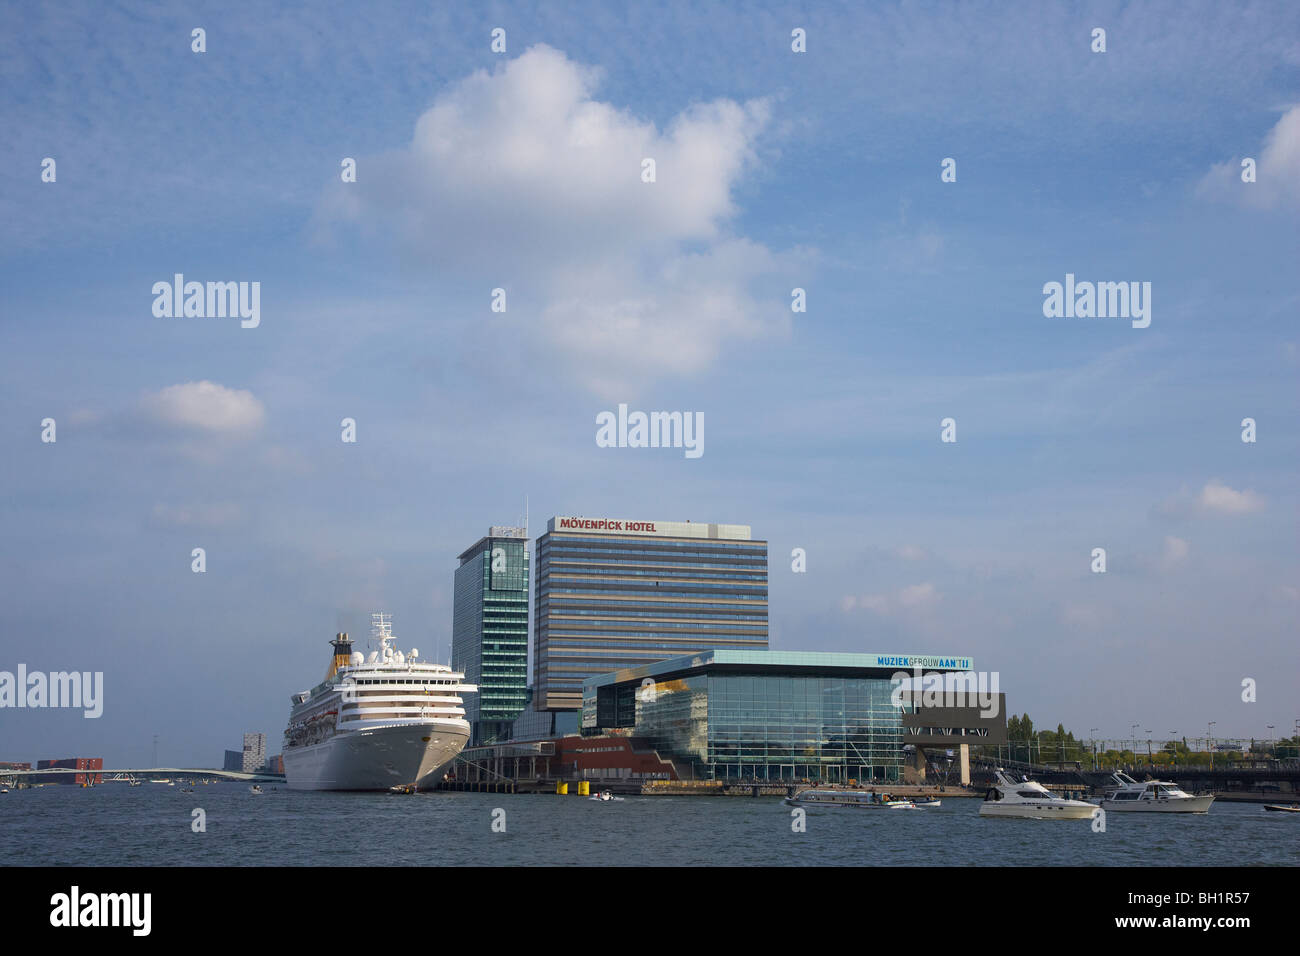 Cruise ship on the river Het Ij next to high rise buildings, Amsterdam, Netherlands, Europe - Stock Image